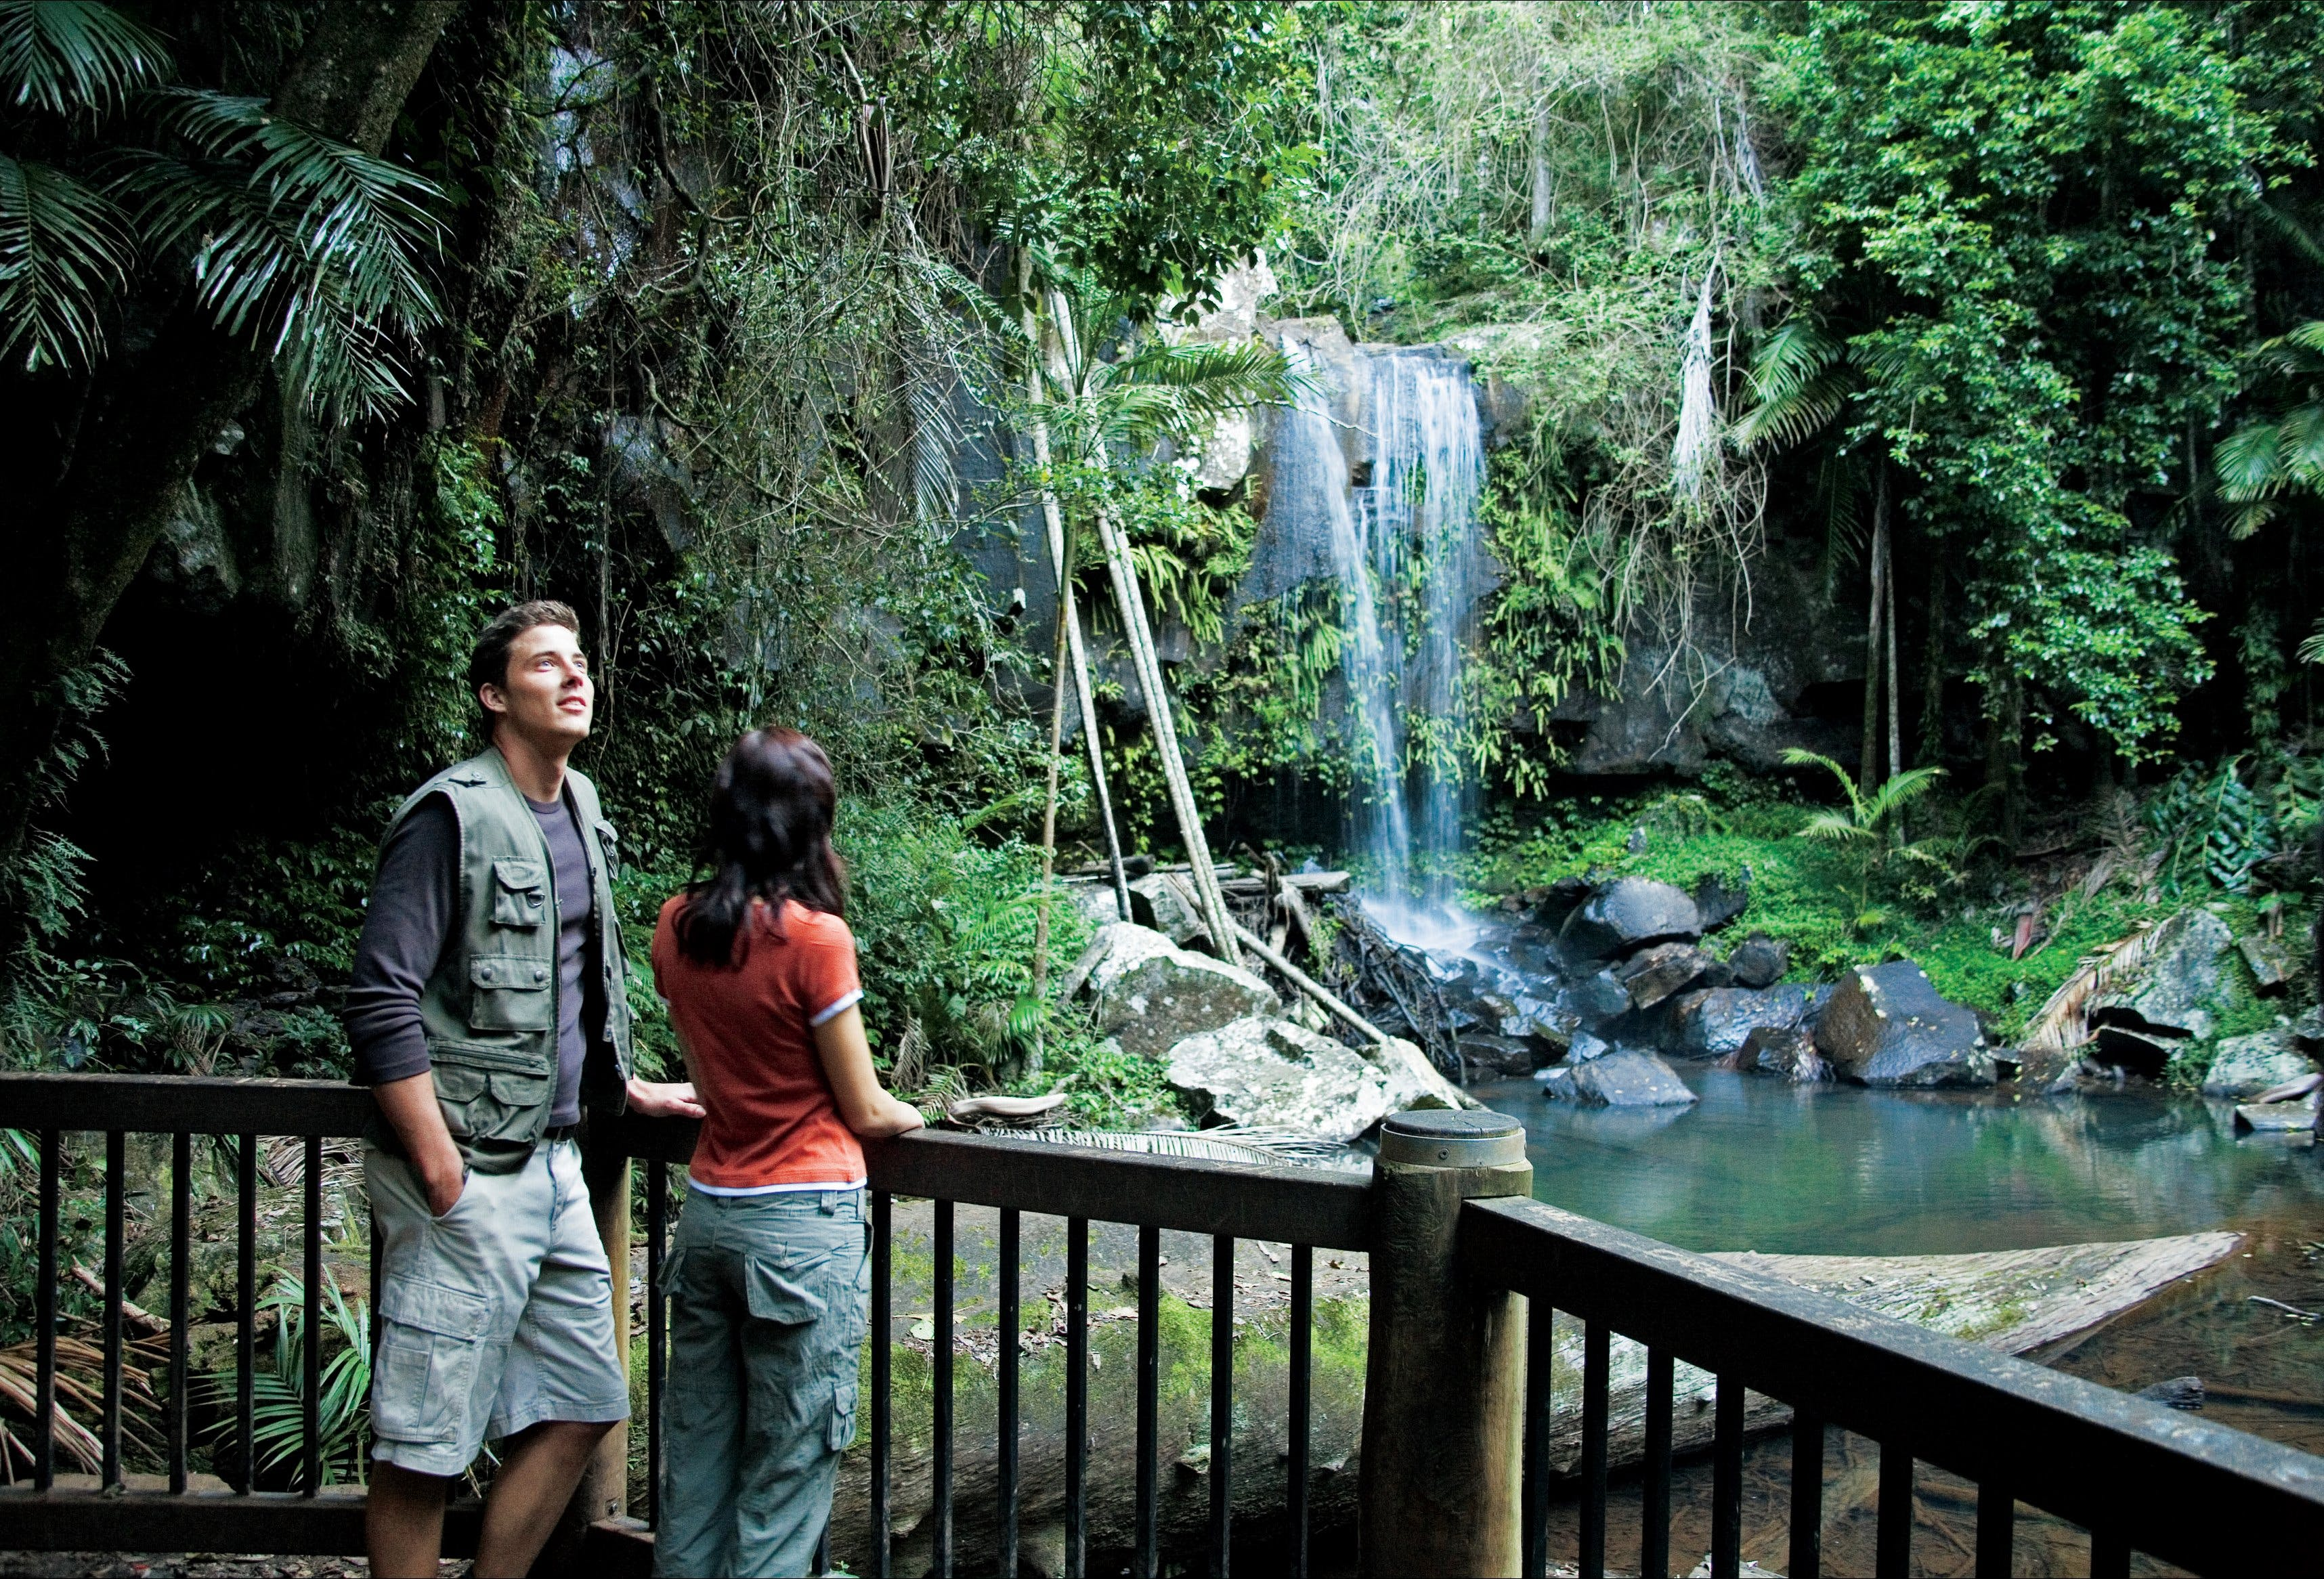 Curtis Falls track, Tamborine National Park Logo and Images